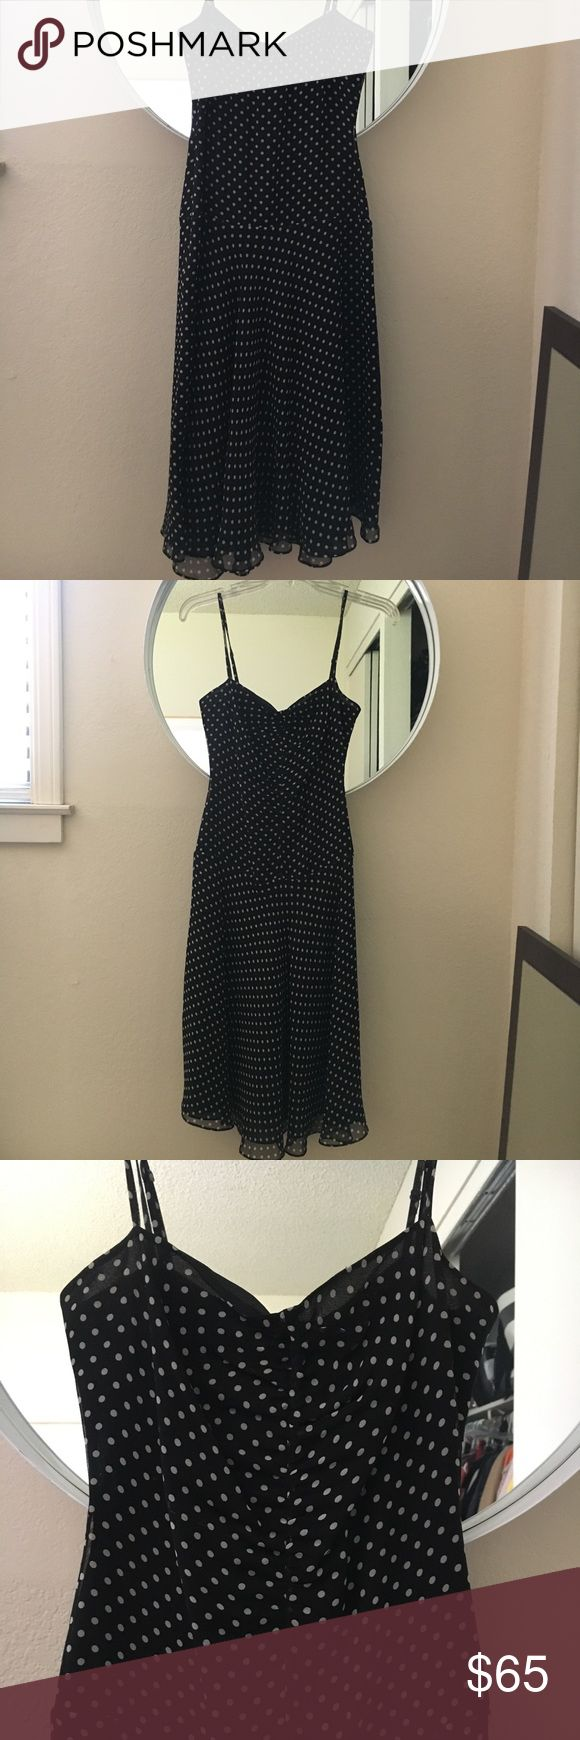 BCBG Max Azria polka dot cocktail dress Perfect condition - only worn once. BCBGMaxAzria Dresses Midi